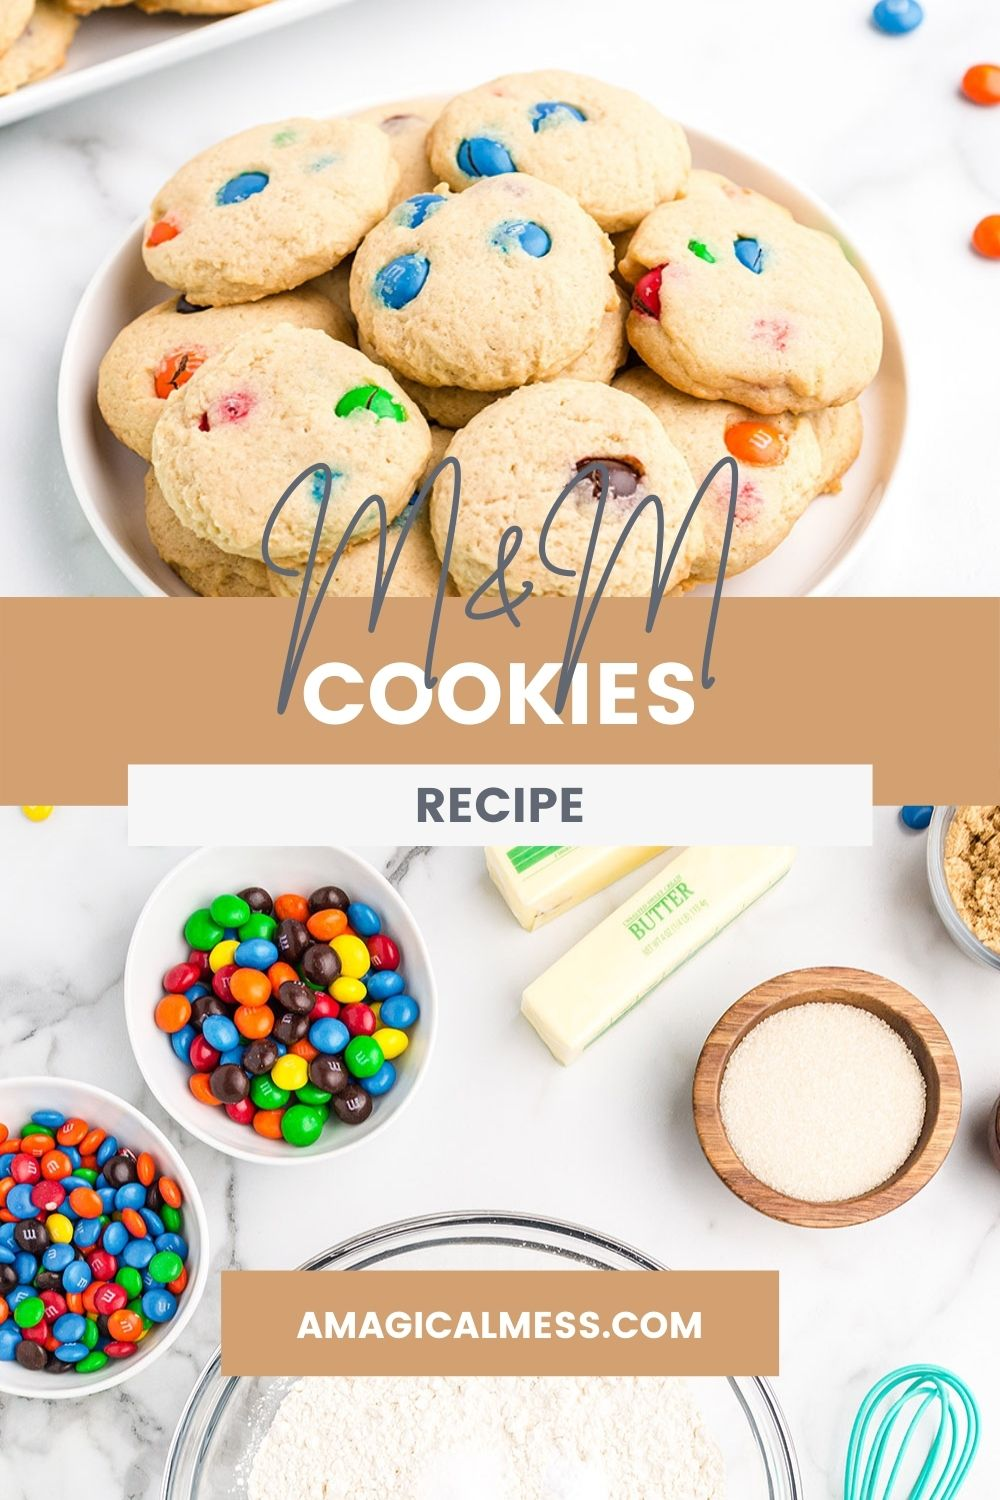 Plate of M&M cookies and ingredients to make them on a table.